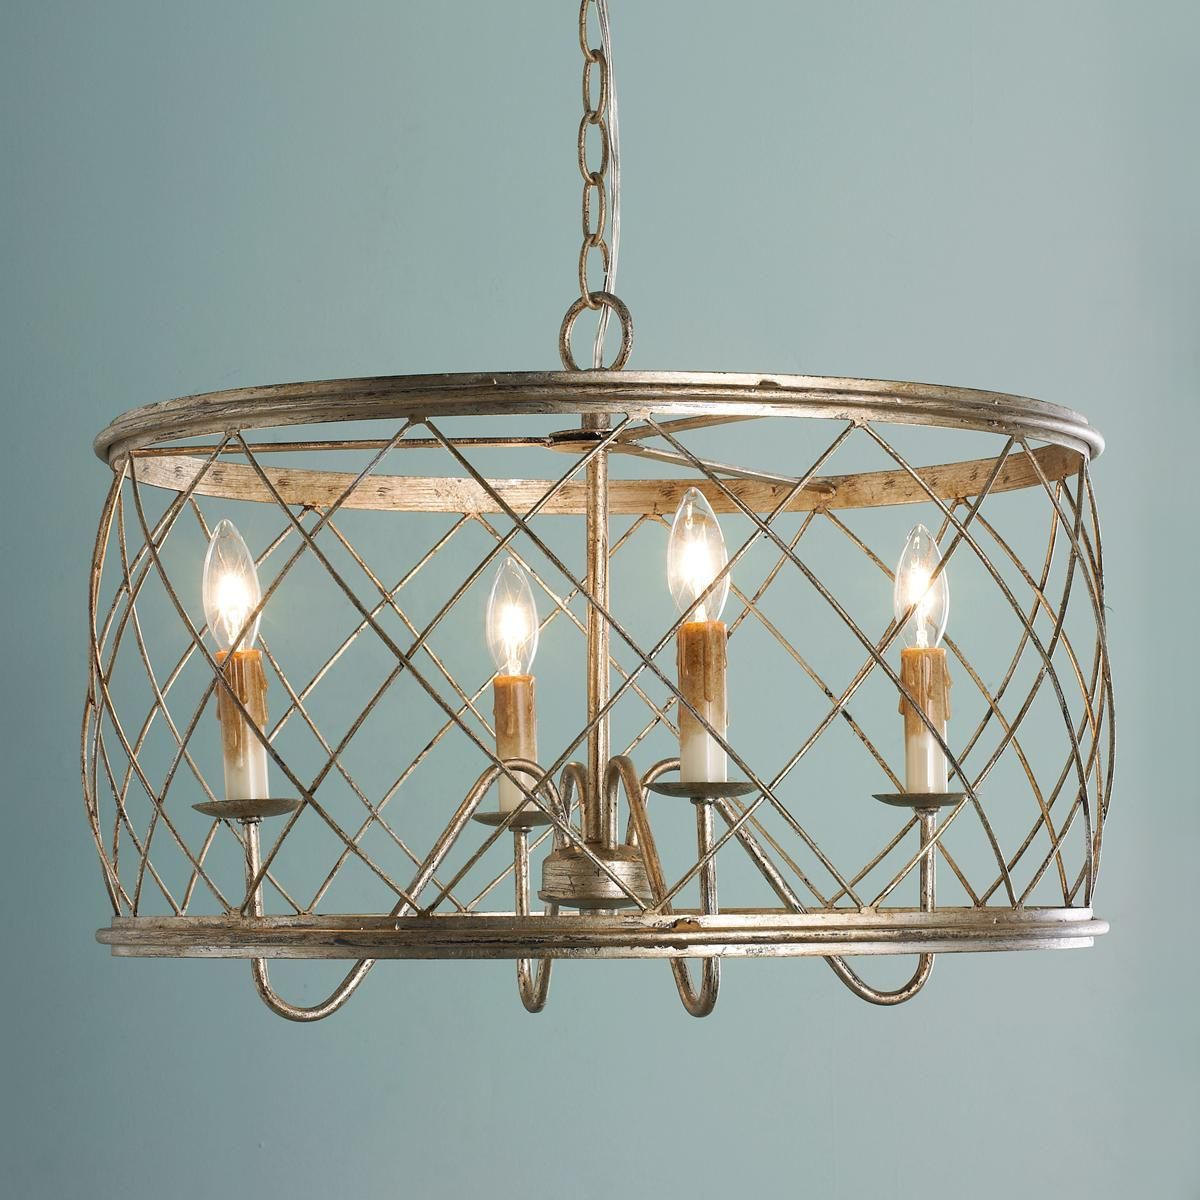 Trellis Cage Drum Chandelier Small Cage Chandelier Ceiling